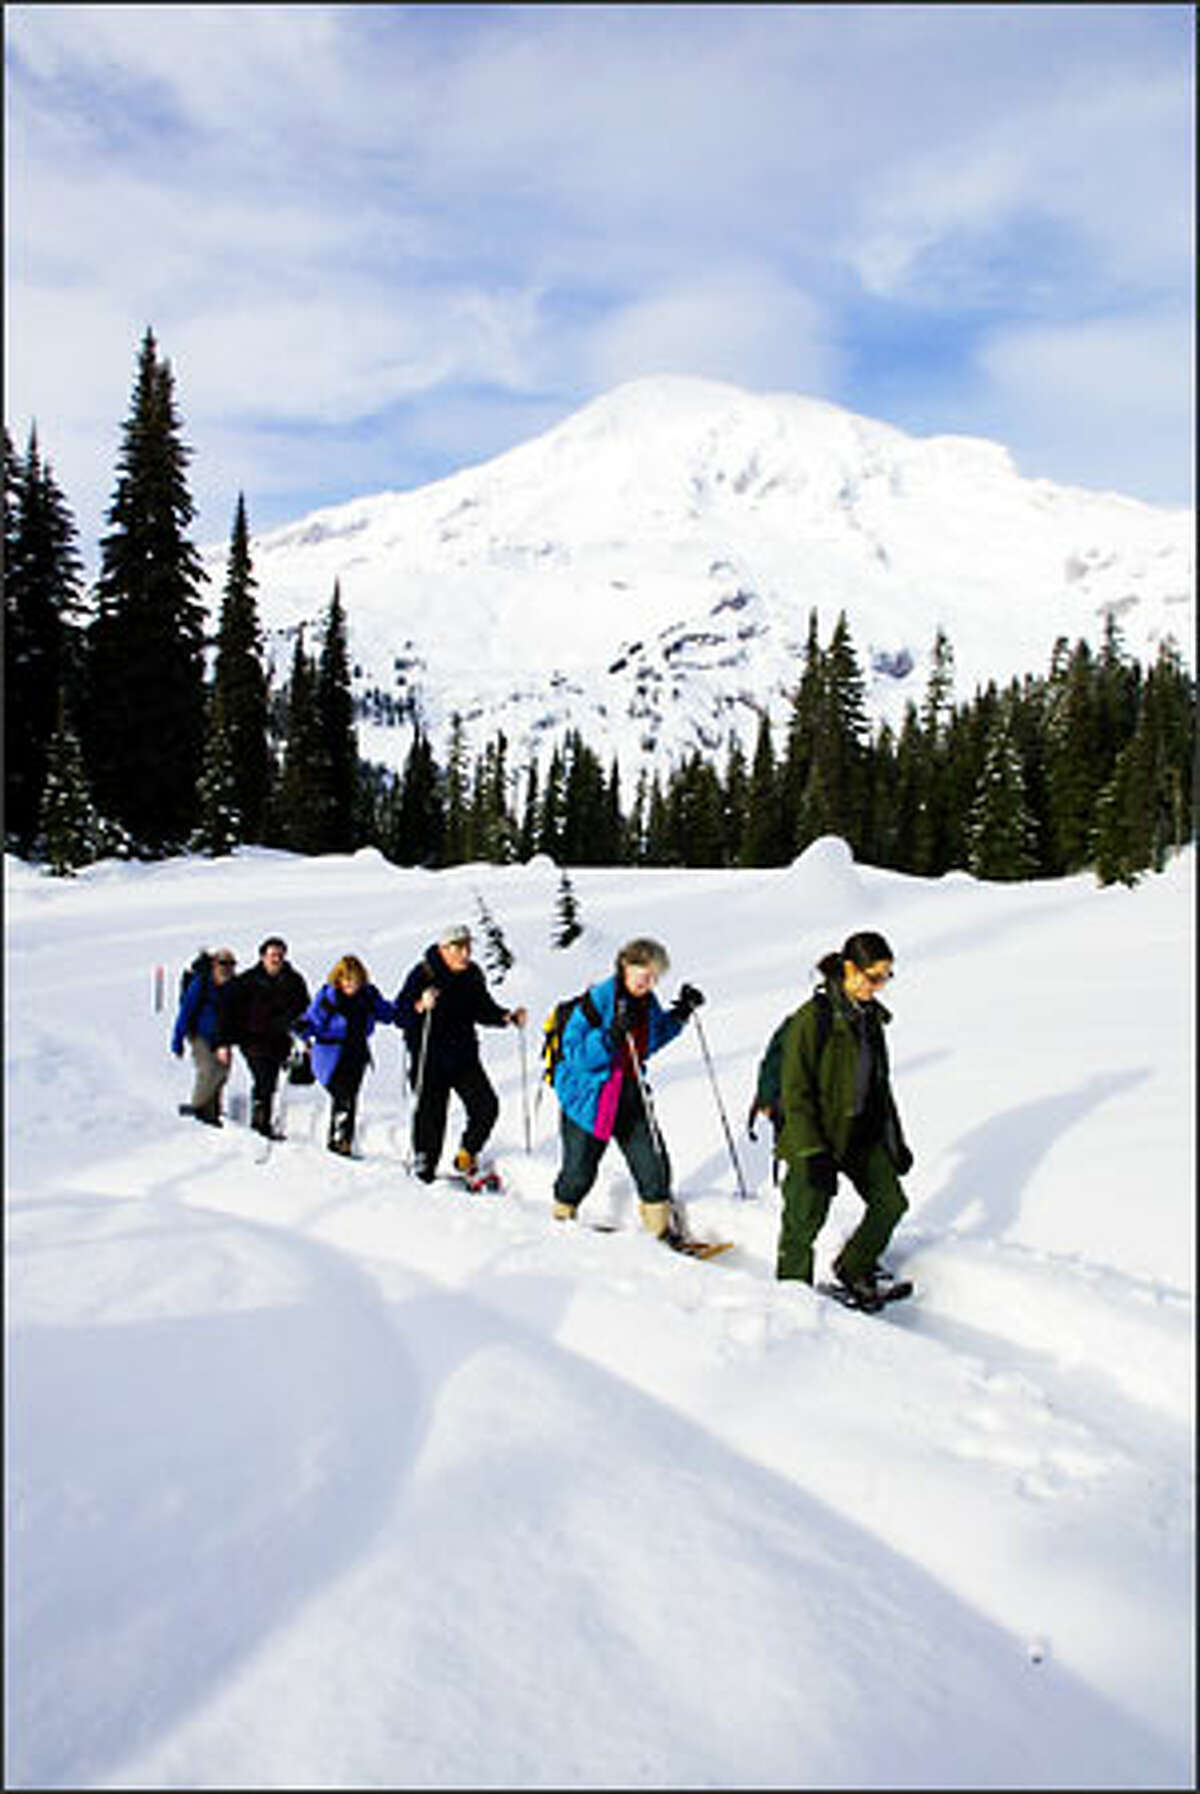 With Mount Rainier's summit in the background, ranger Dana Ostfeld leads a two-hour snowshoe walk from Paradise. U.S. Interior Secretary Ryan Zinke wants to charge $70 a carload for visitors during peak season at Mount Rainier National Park.